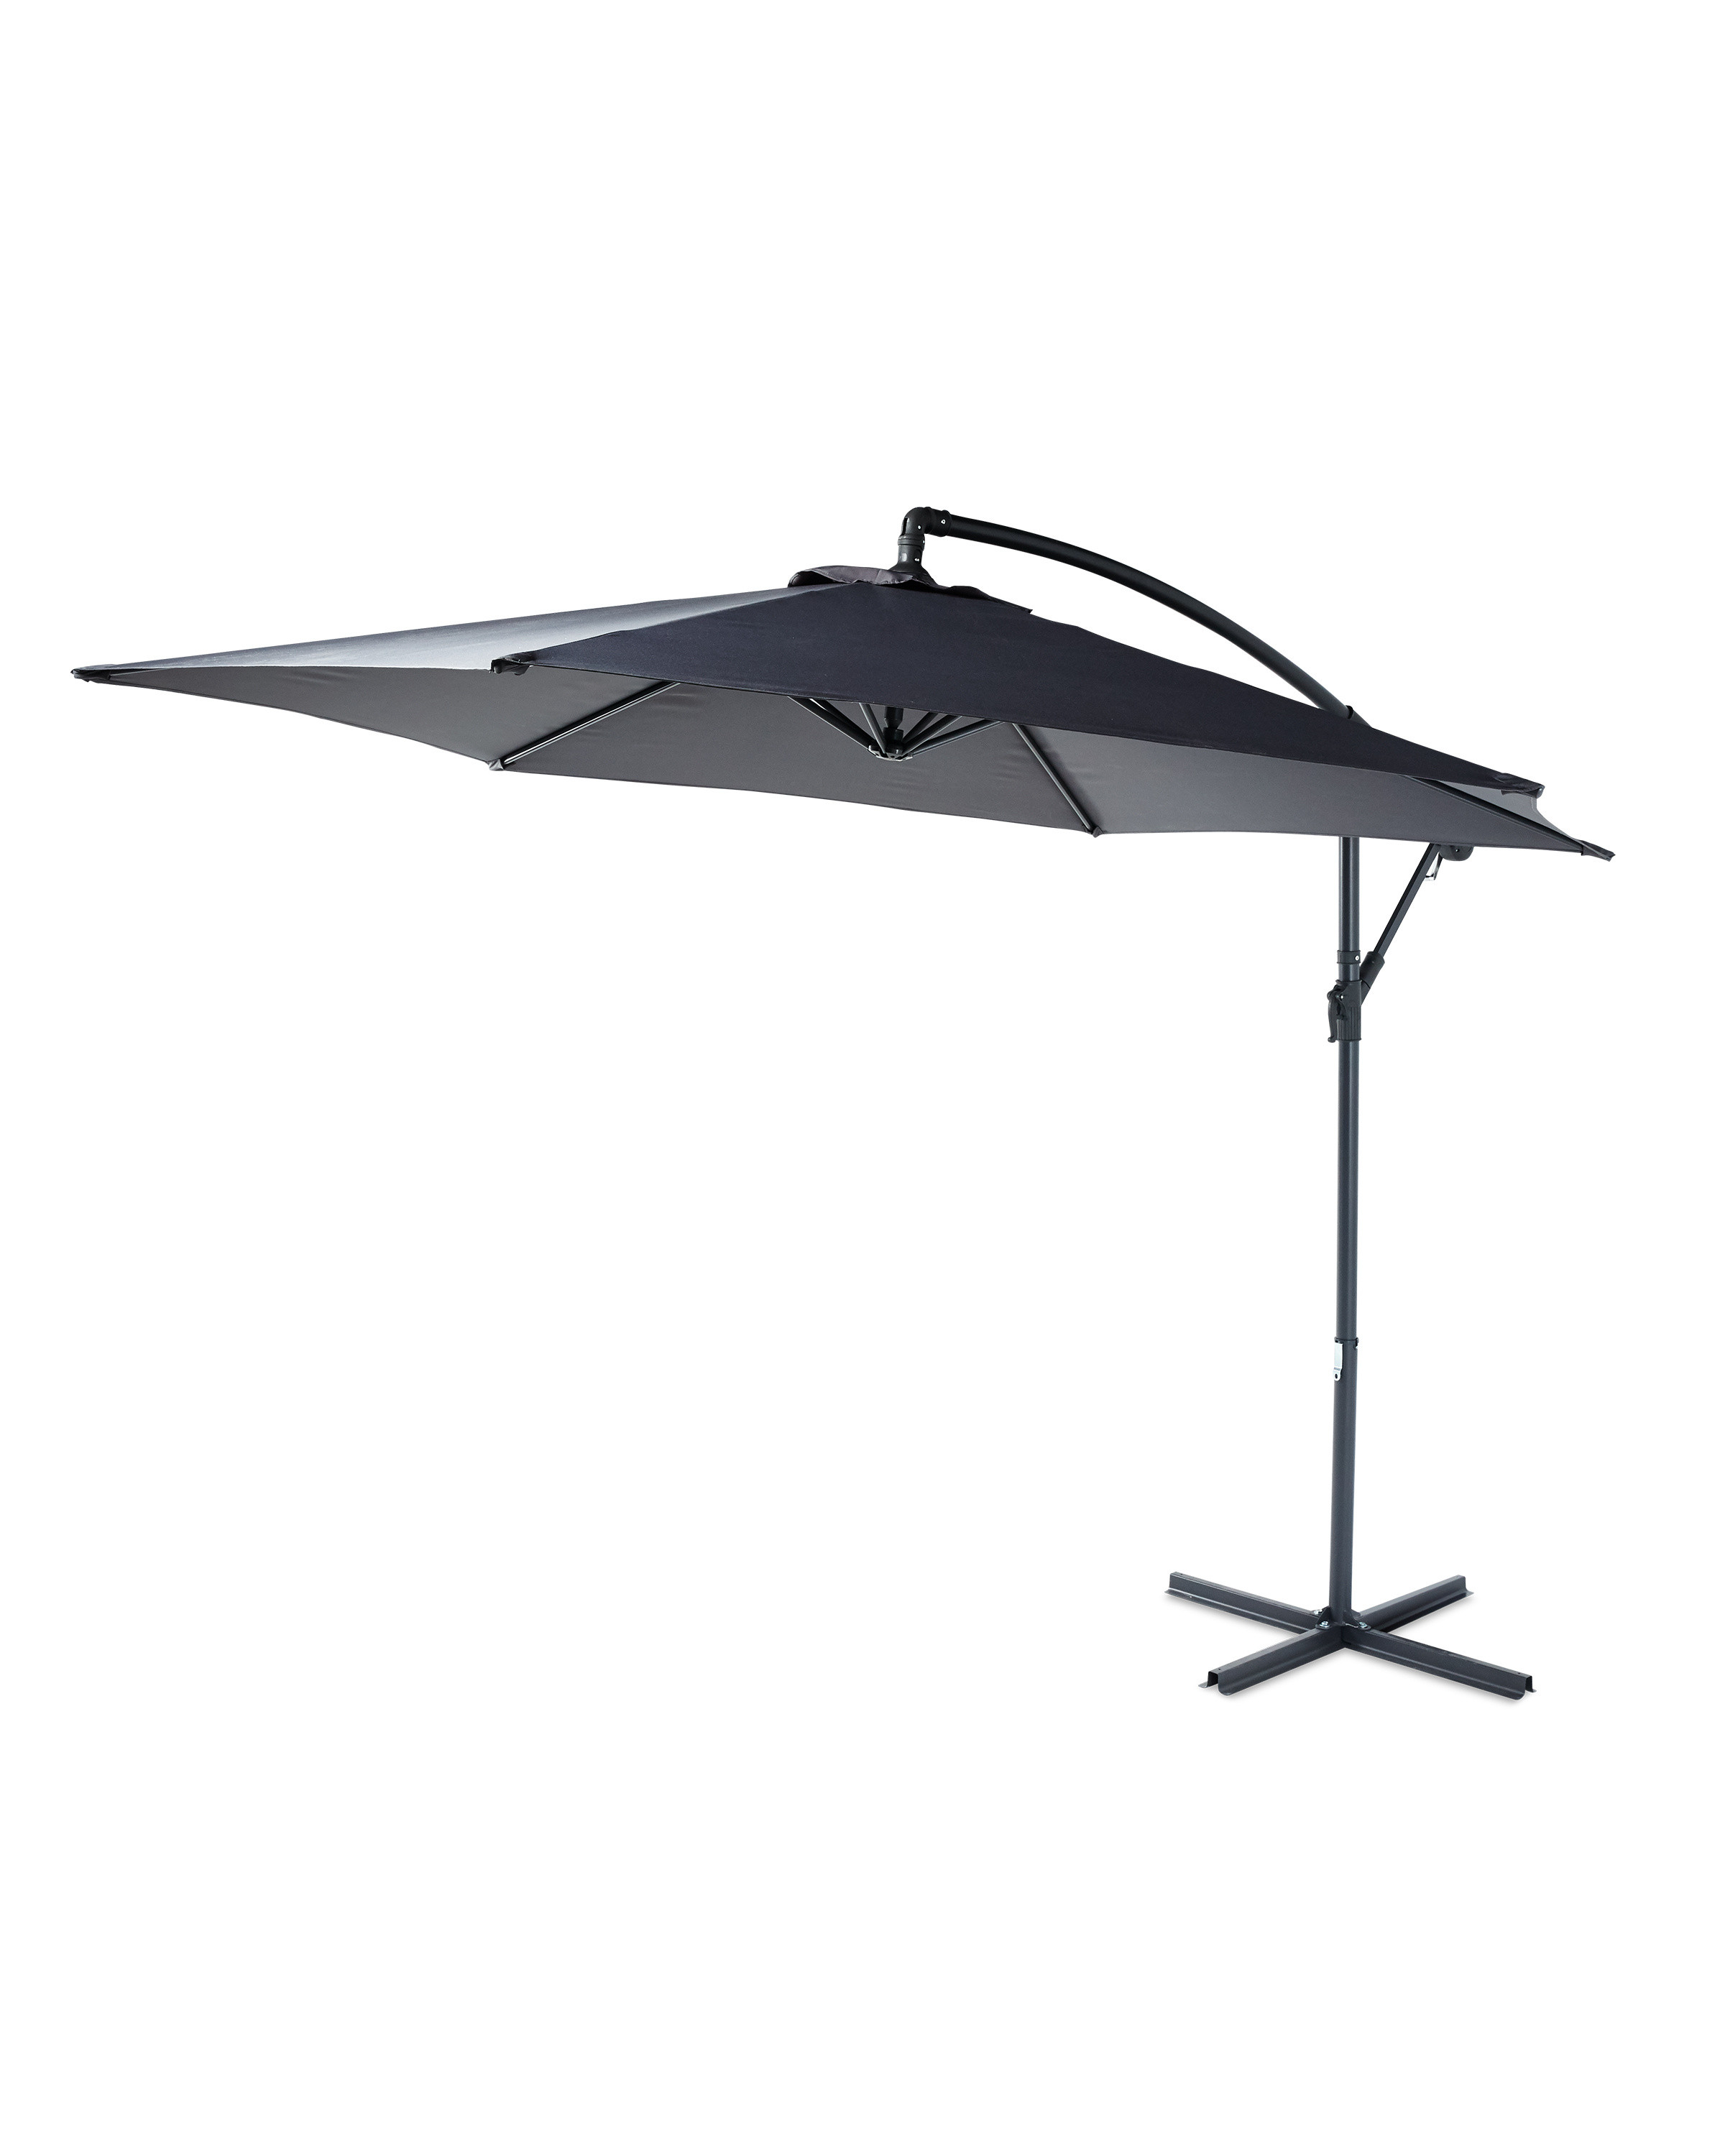 5f90a4f7f384 Garden Cantilever Parasol | Outdoor Giant Patio Umbrella | ALDI UK